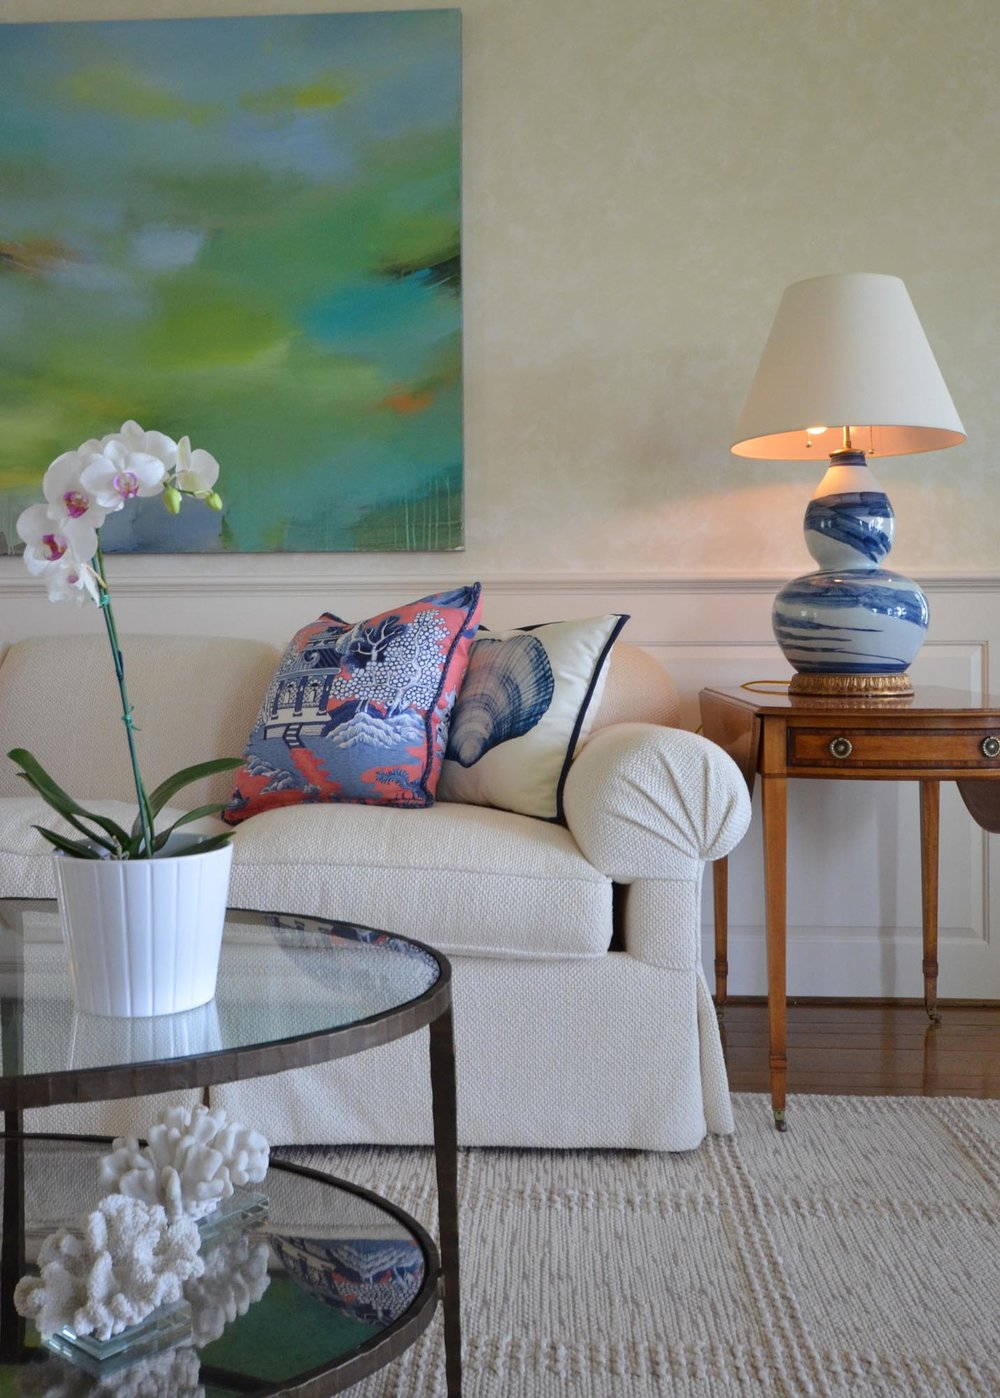 Living room sofa with pillows and flower on the glass coffee table